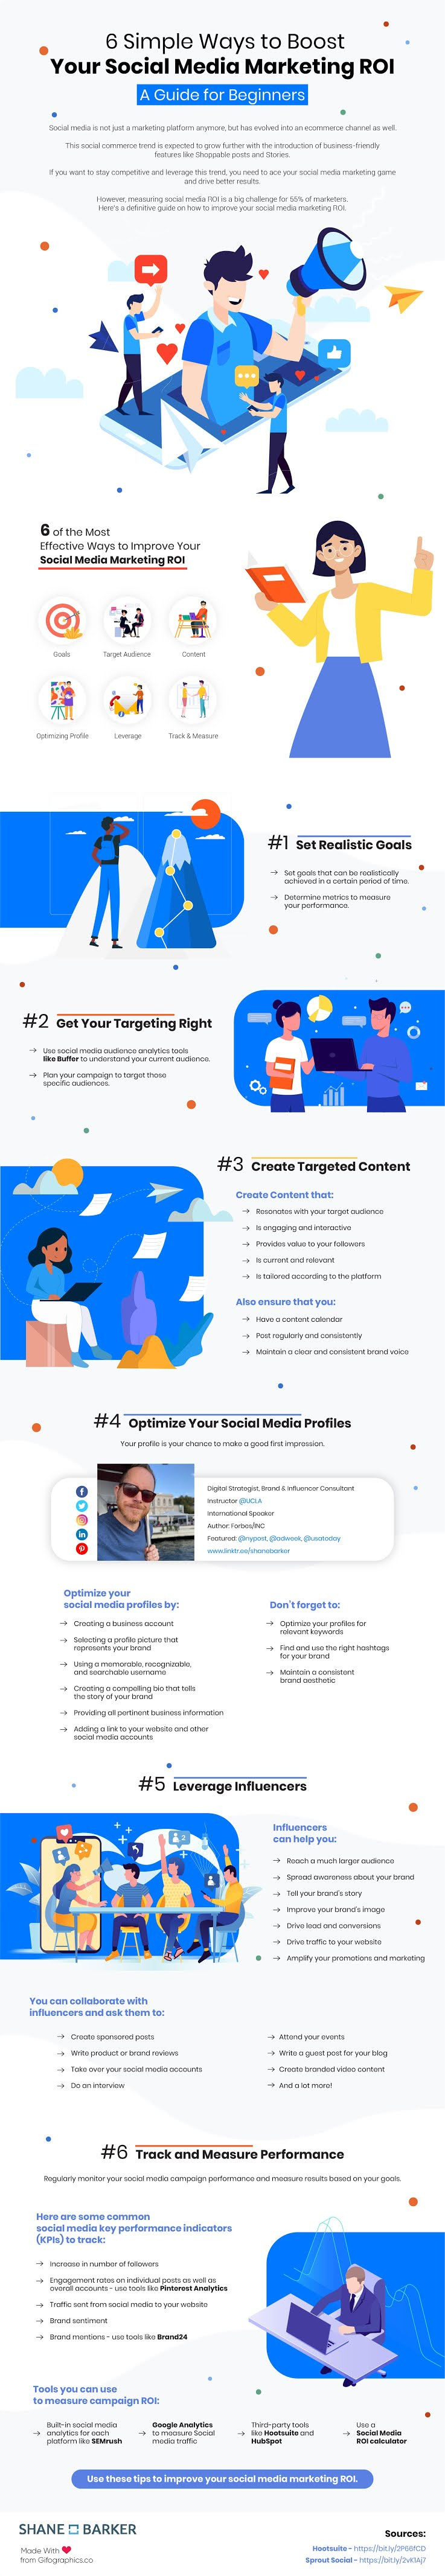 6 Simple Ways to Boost Your Social Media Marketing ROI #infographic